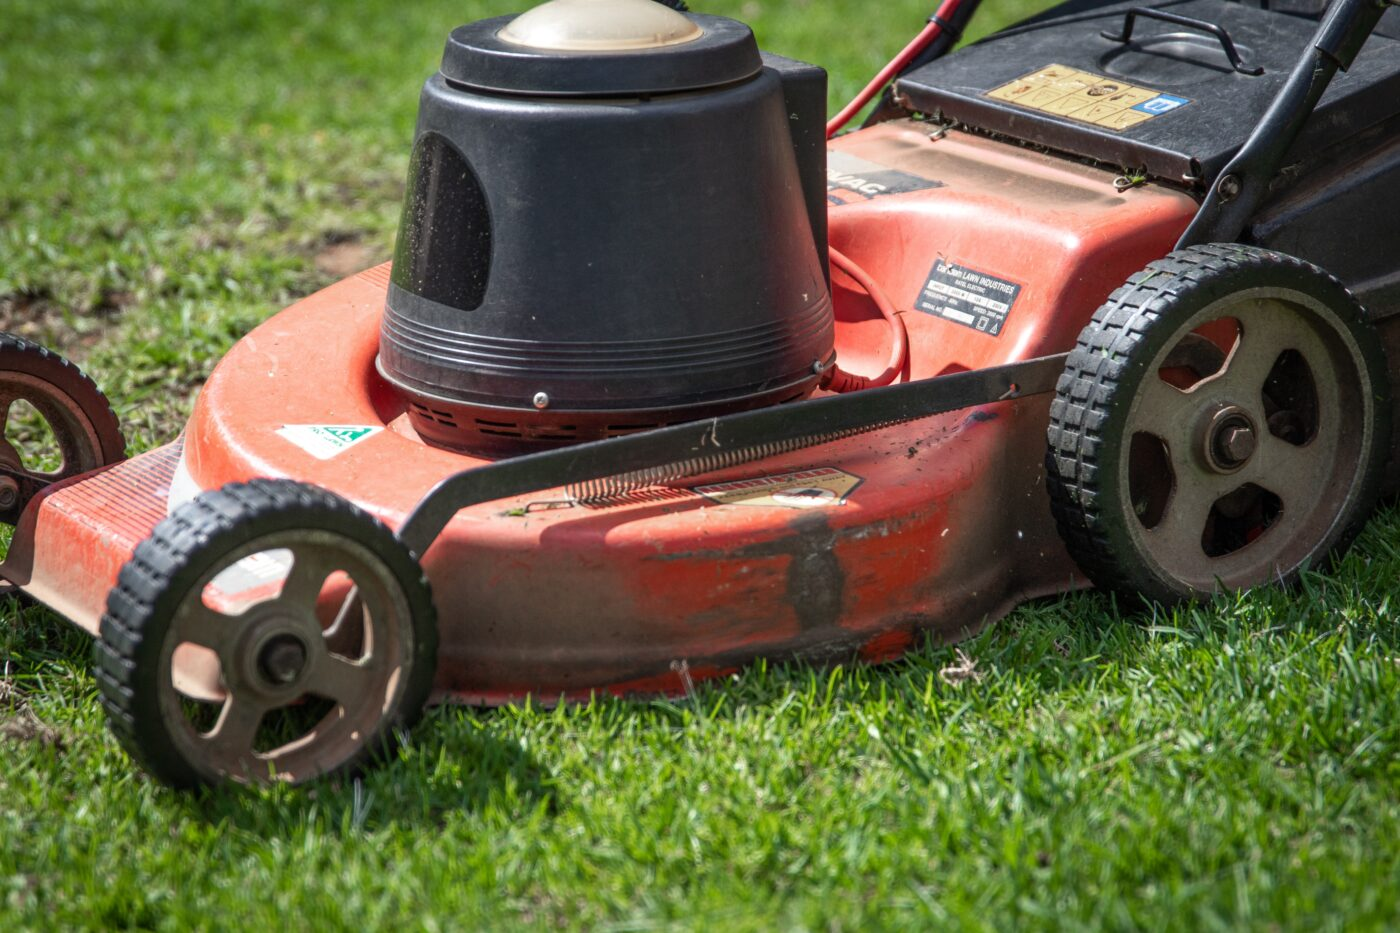 lawnmower mowing lawn